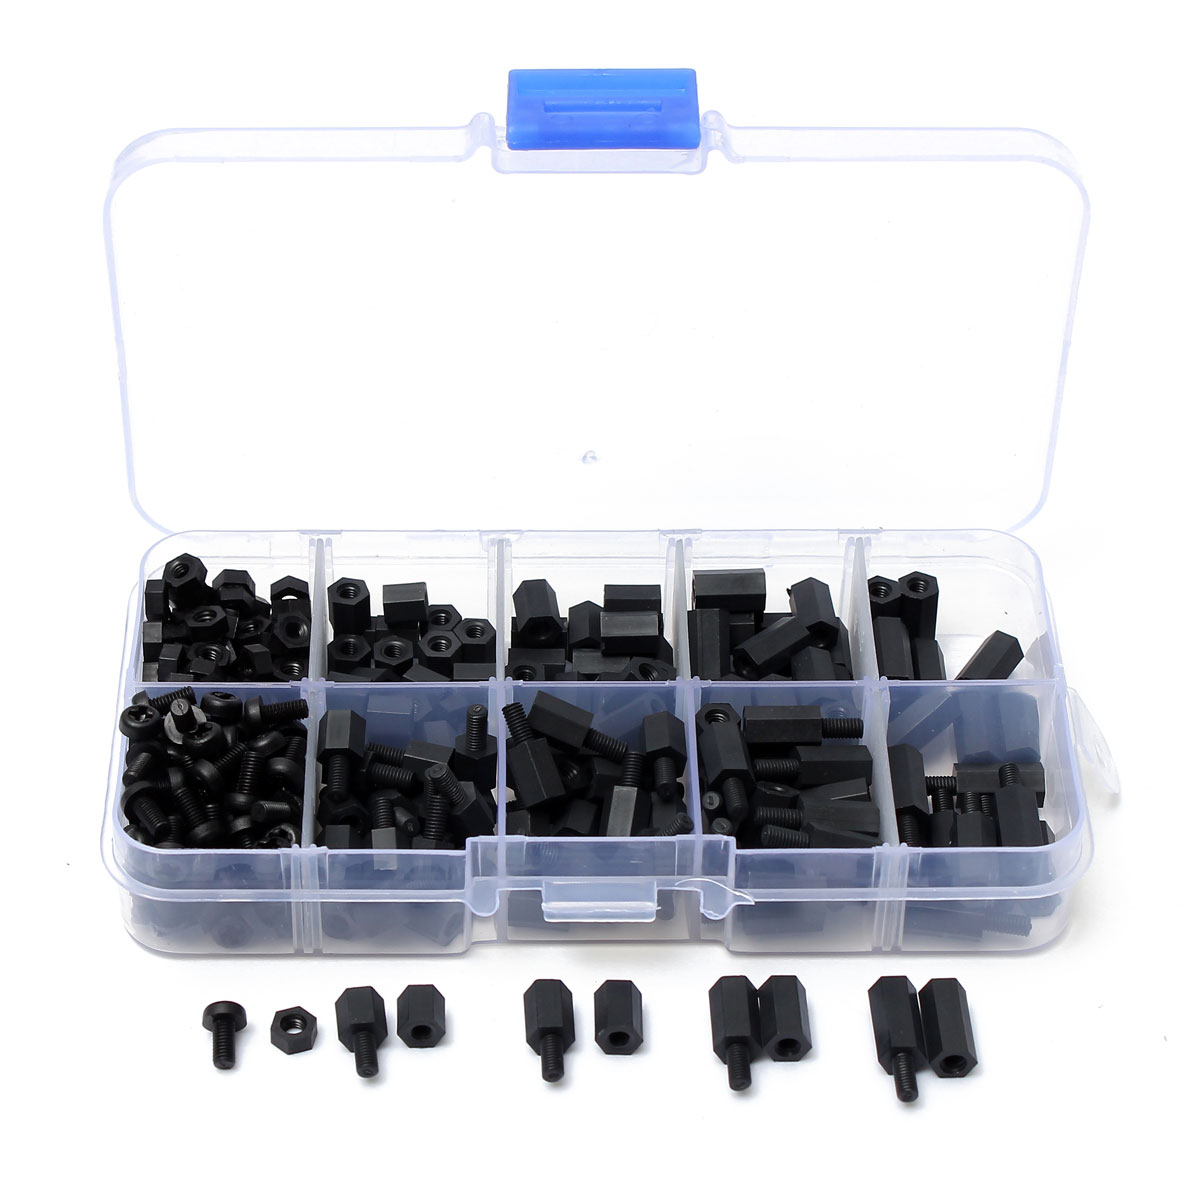 300pcs M3 Nylon Black Hex Screw Nut Spacer Stand-off Varied Length Assortment Kit Box 240pc set m3 cap head stainless steel hex socket screws bolt with hex nuts assortment kit fasteners with plastic box screw bolt